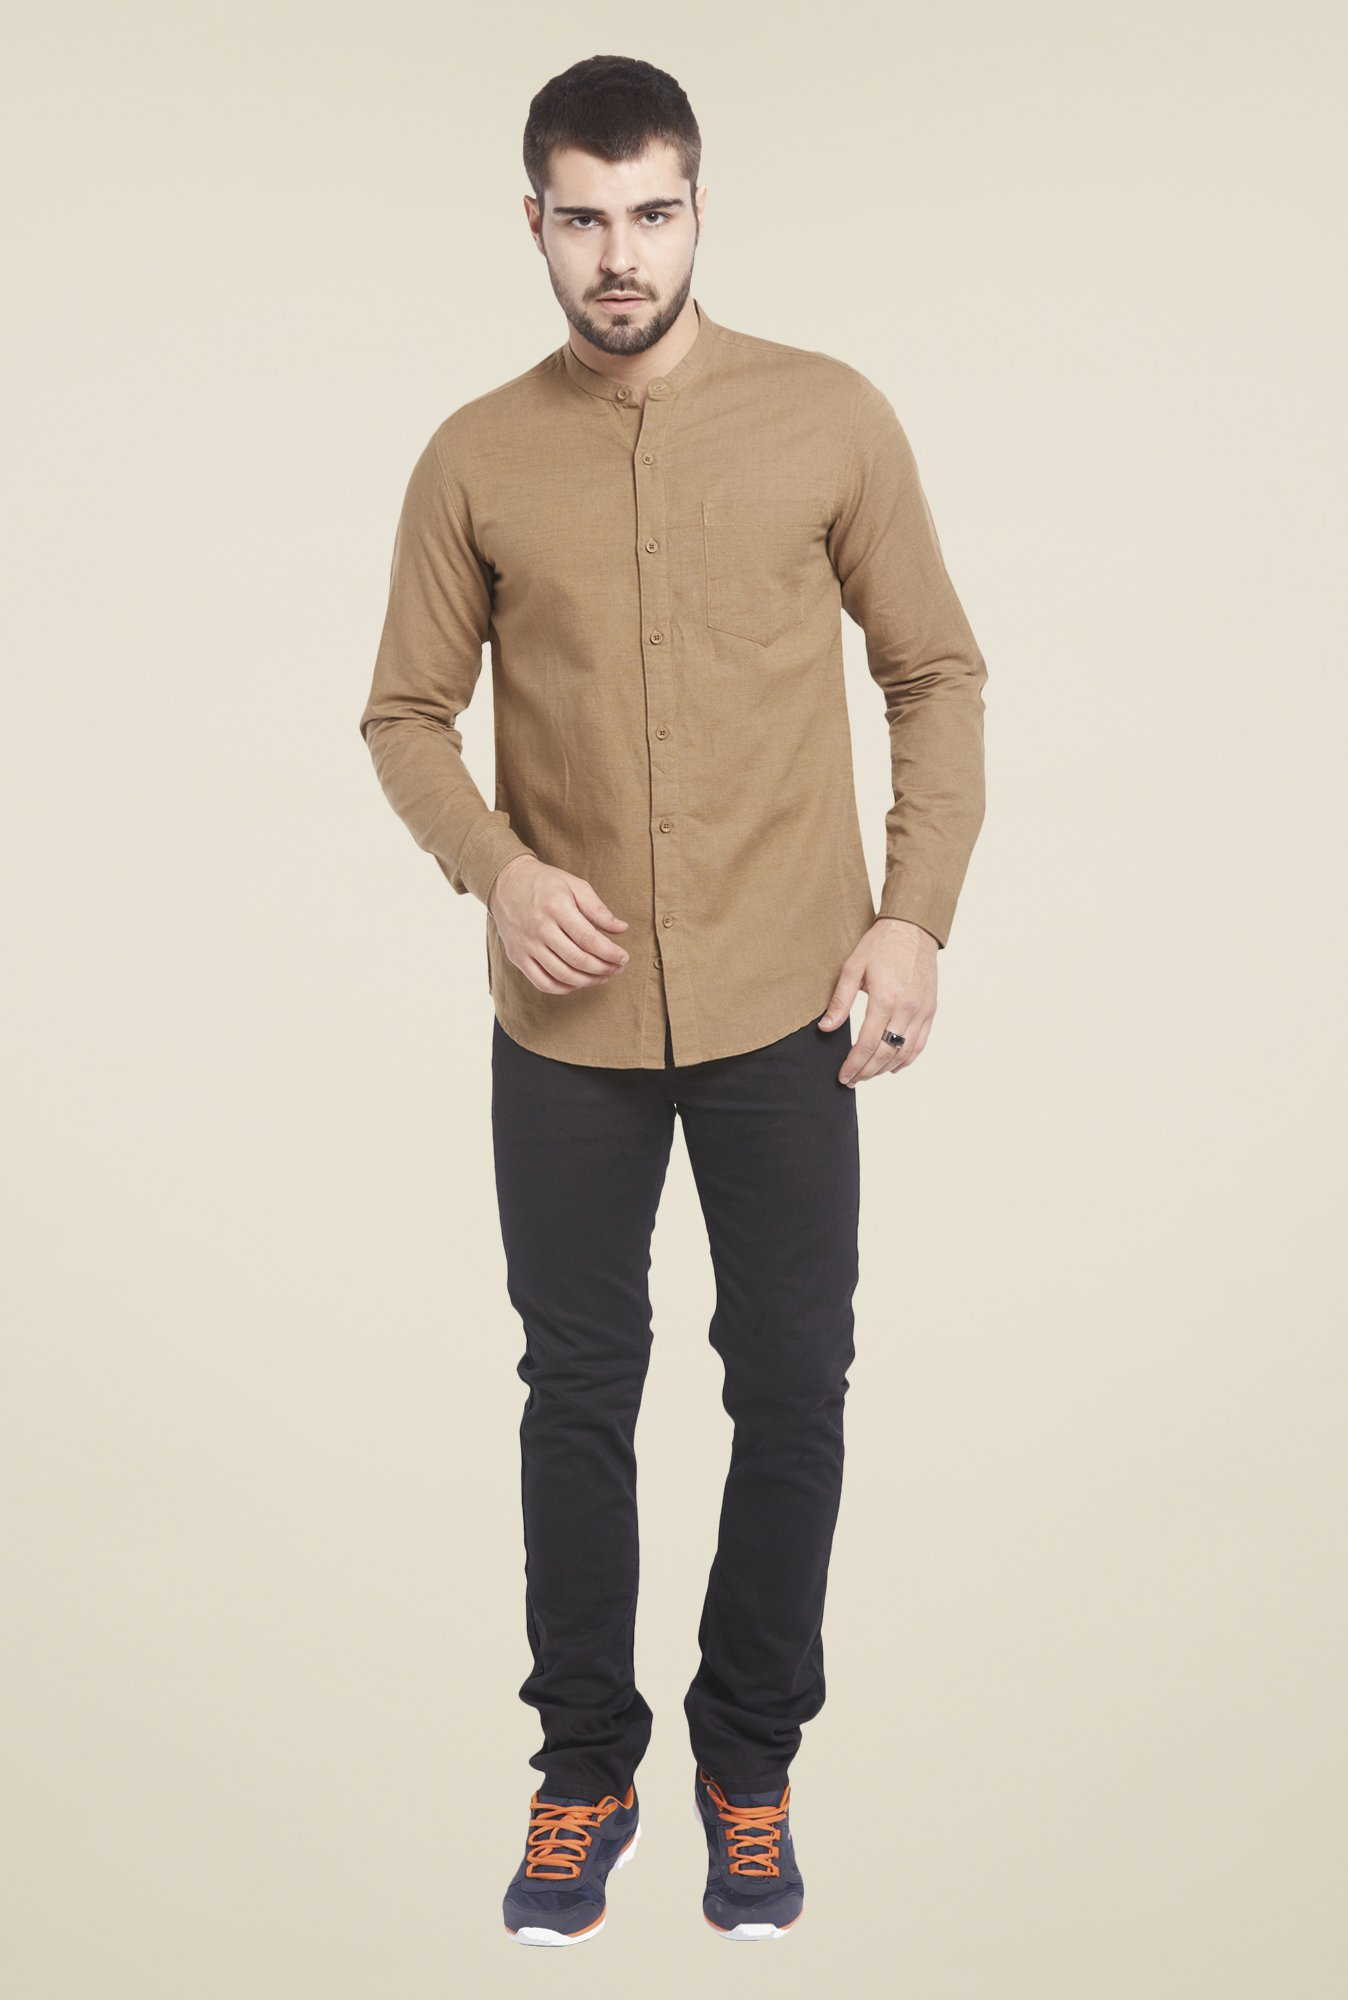 Globus Brown Solid Linen Shirt